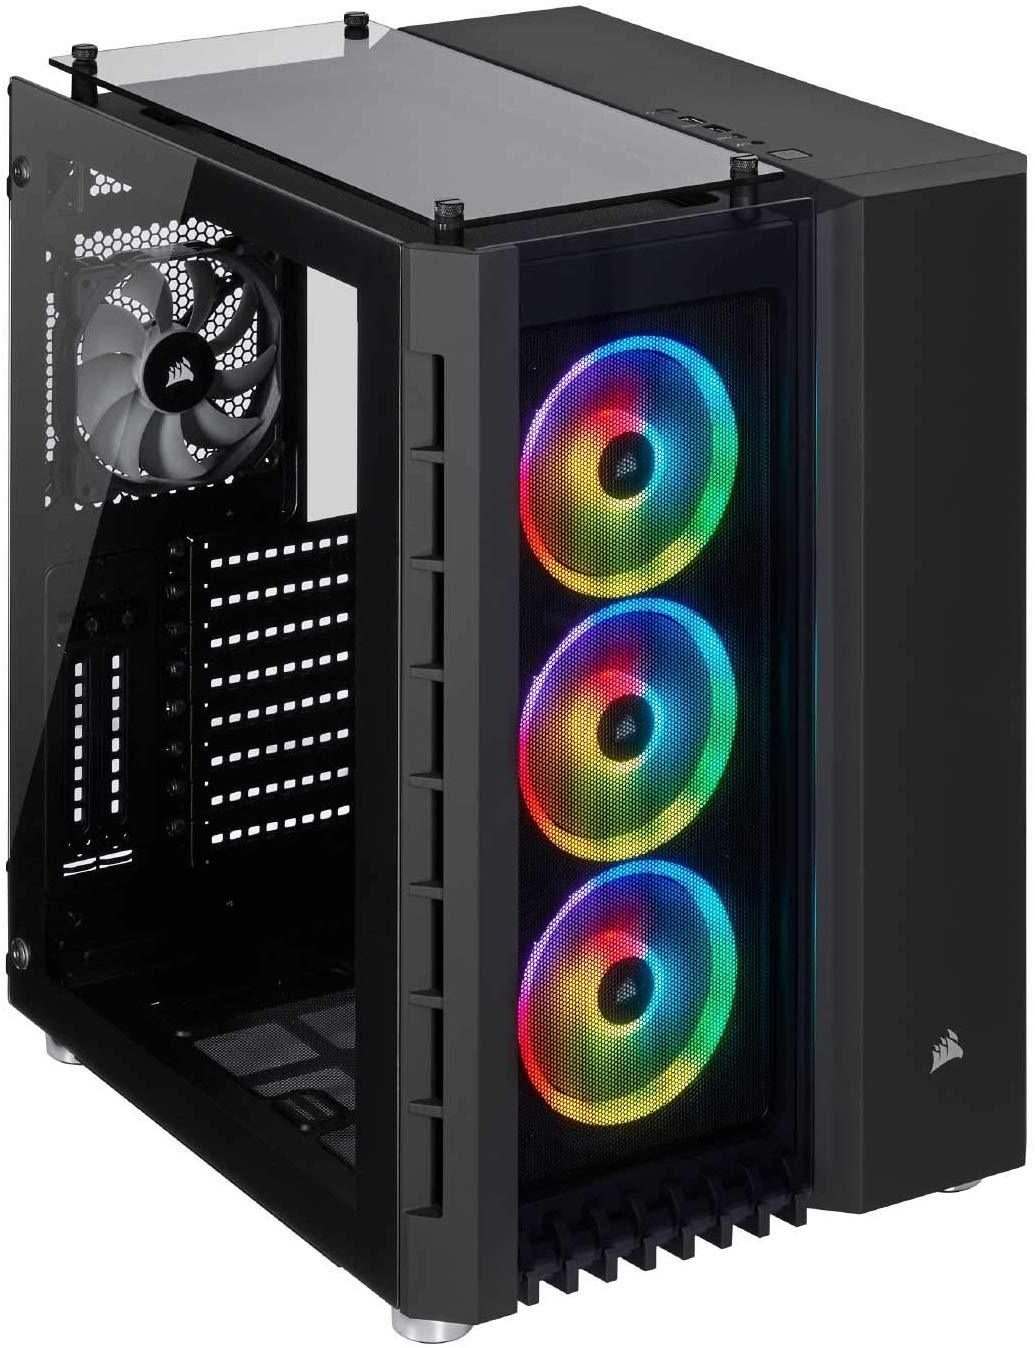 Corsair 680X RGB ATX Mid Tower Case - Black